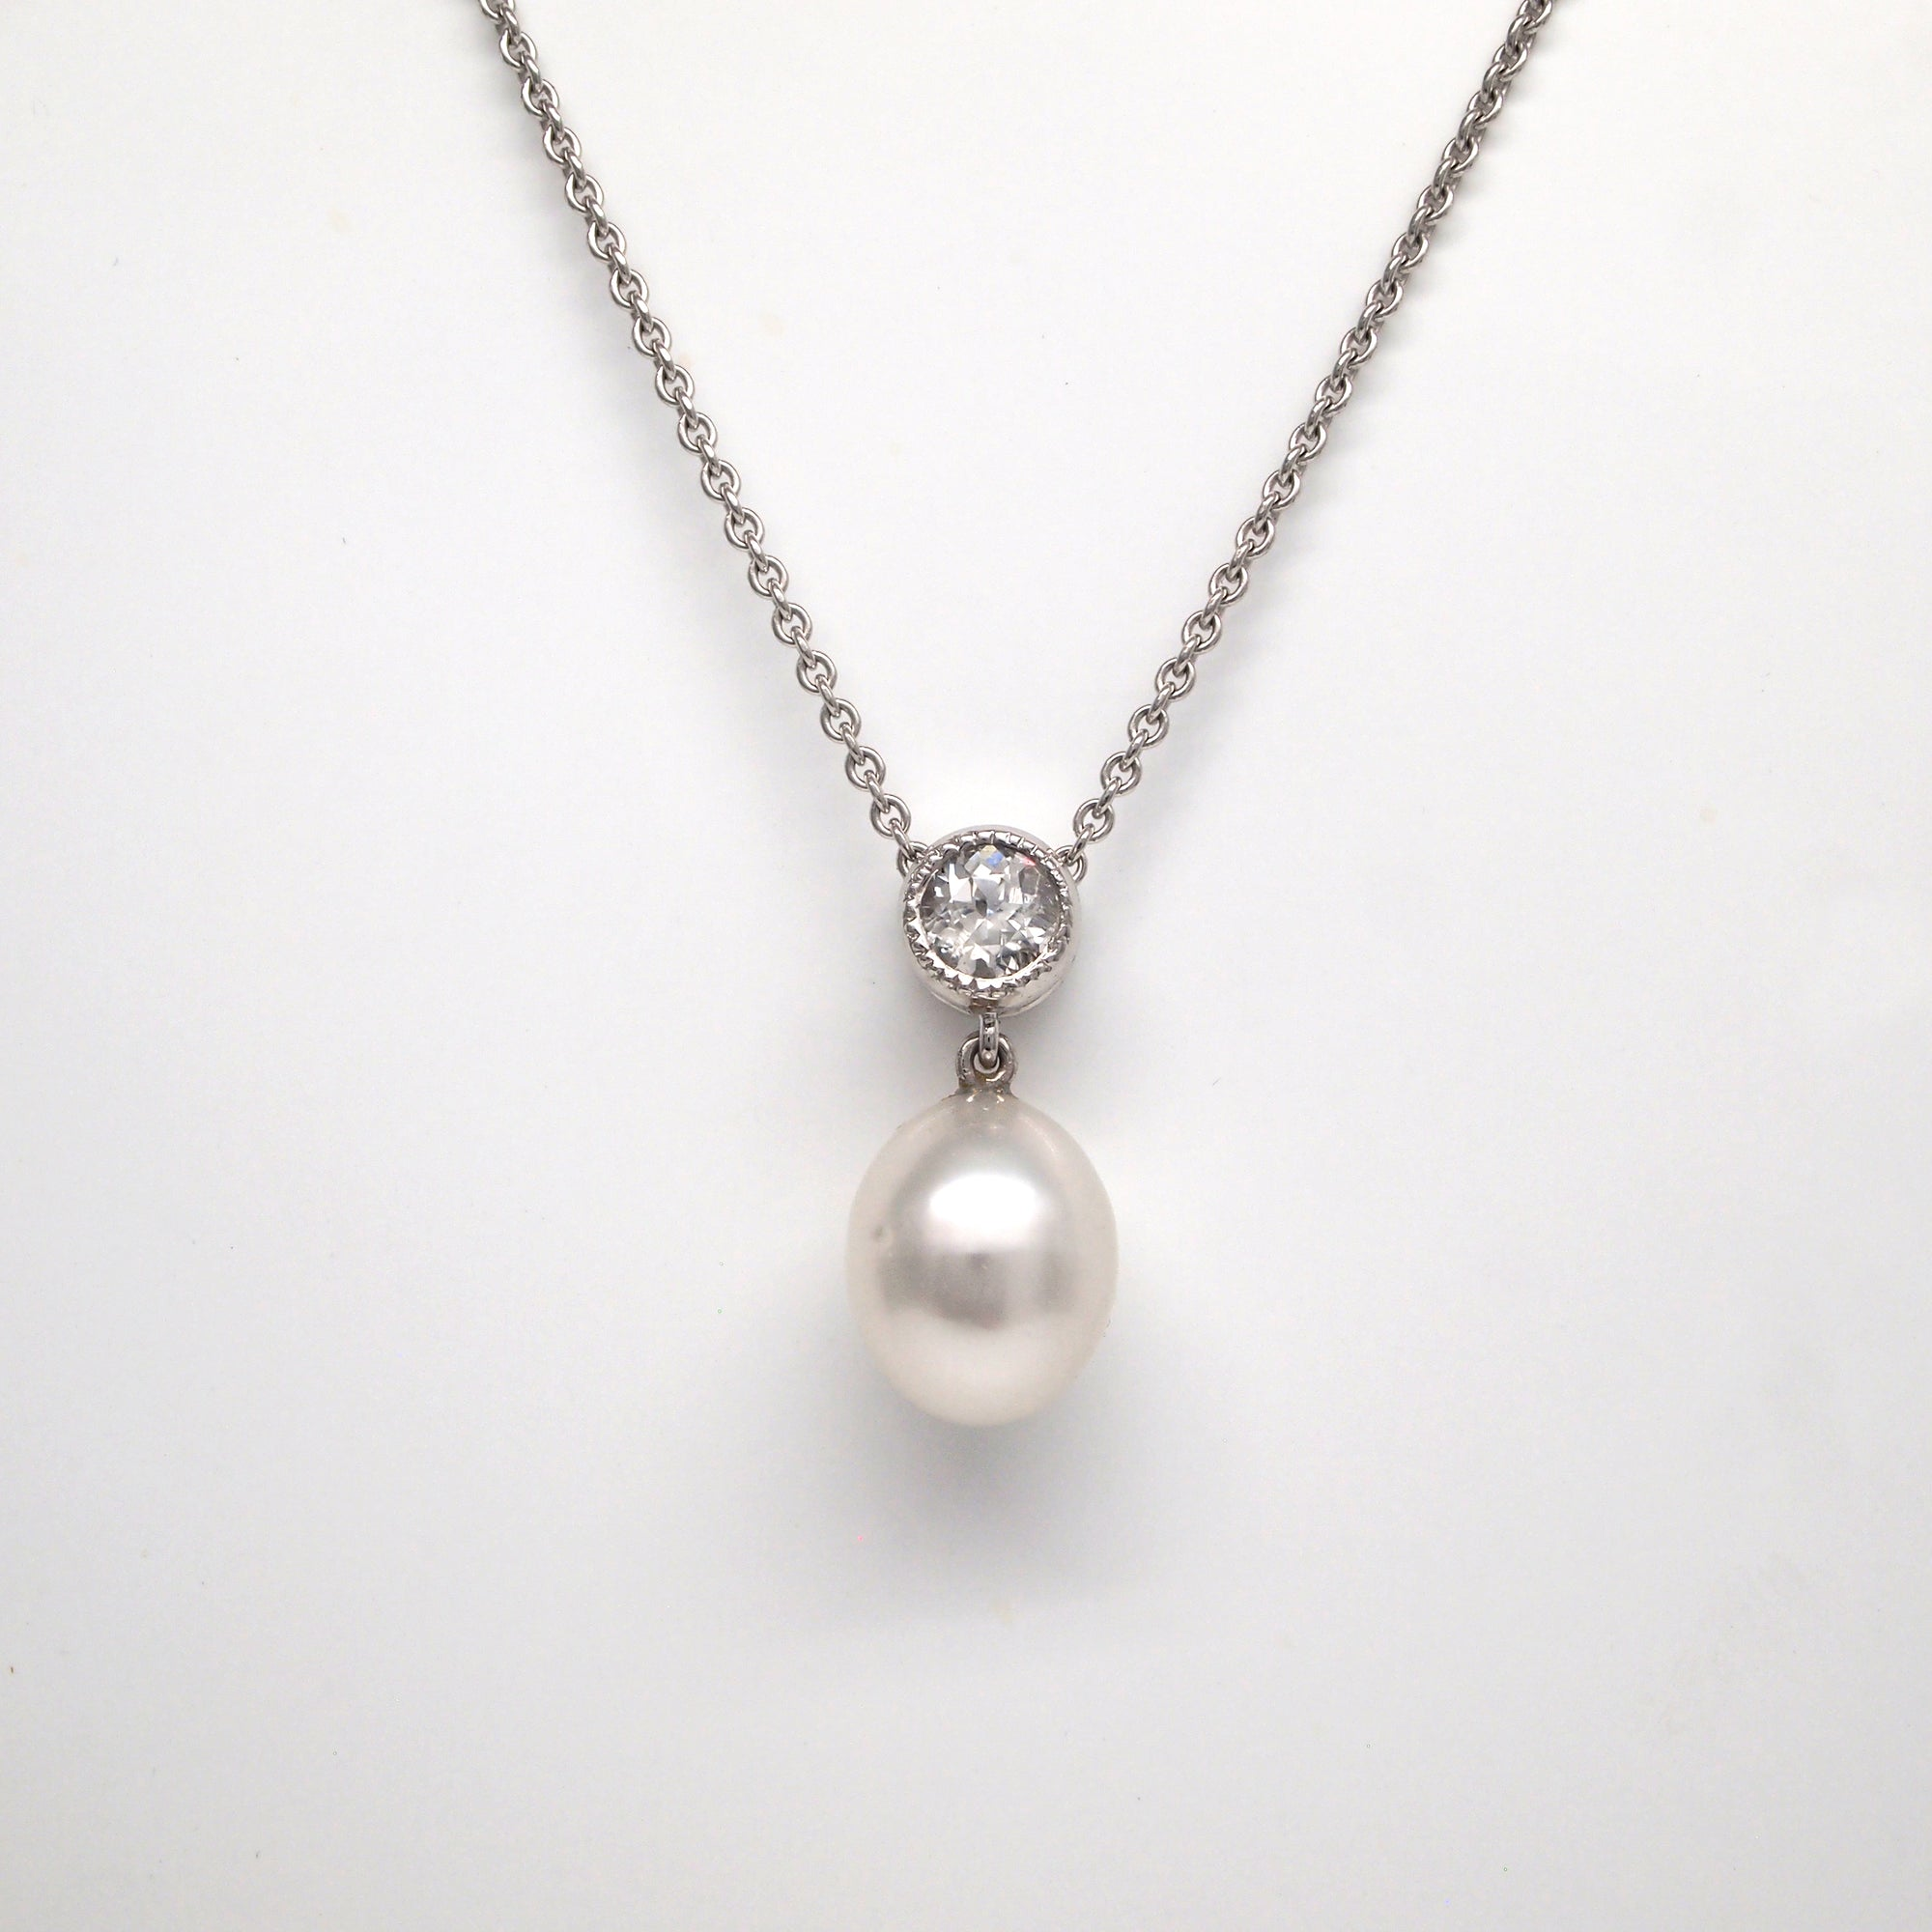 14K White Gold White Sapphire And Pearl Necklace